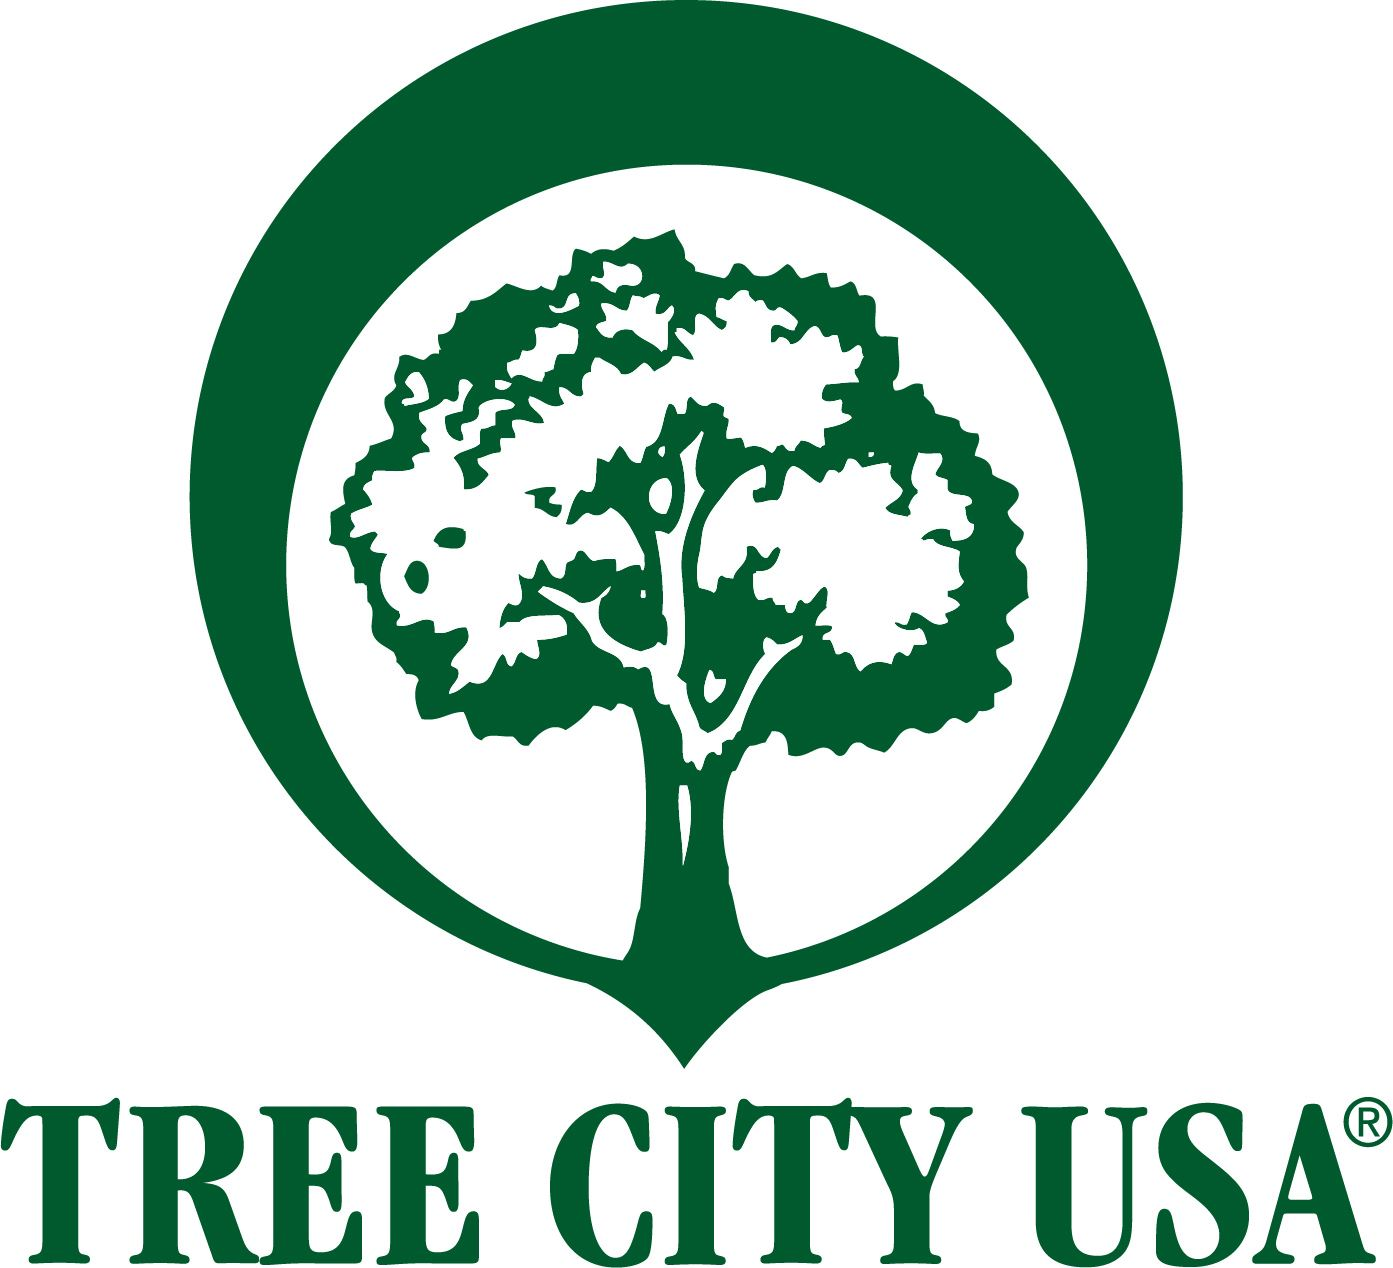 Green tree with white background text Tree City USA logo